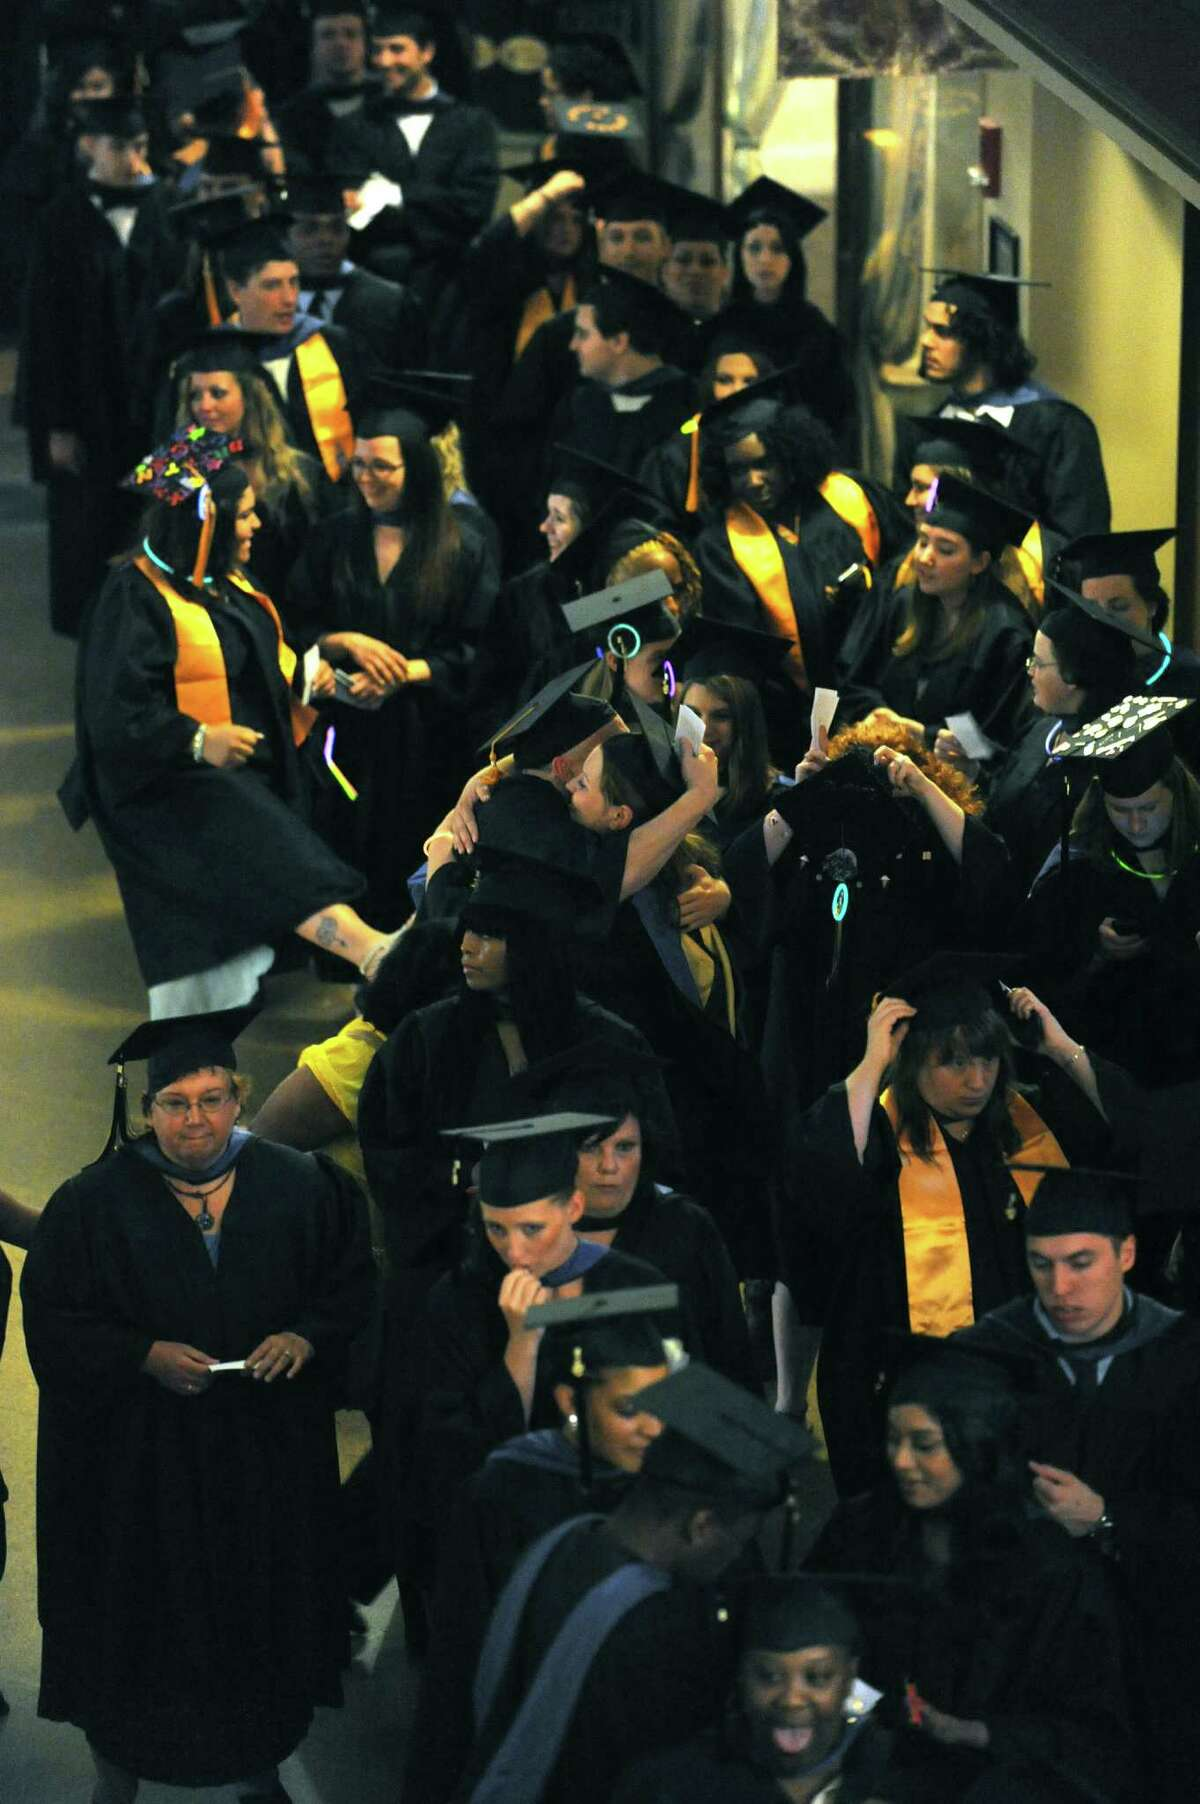 Graduates line up for the processional during Schenectady County Community College's Forty-Third graduation commencement at Proctors on Thursday May 23, 2013 in Schenectady, N.Y. (Michael P. Farrell/Times Union)